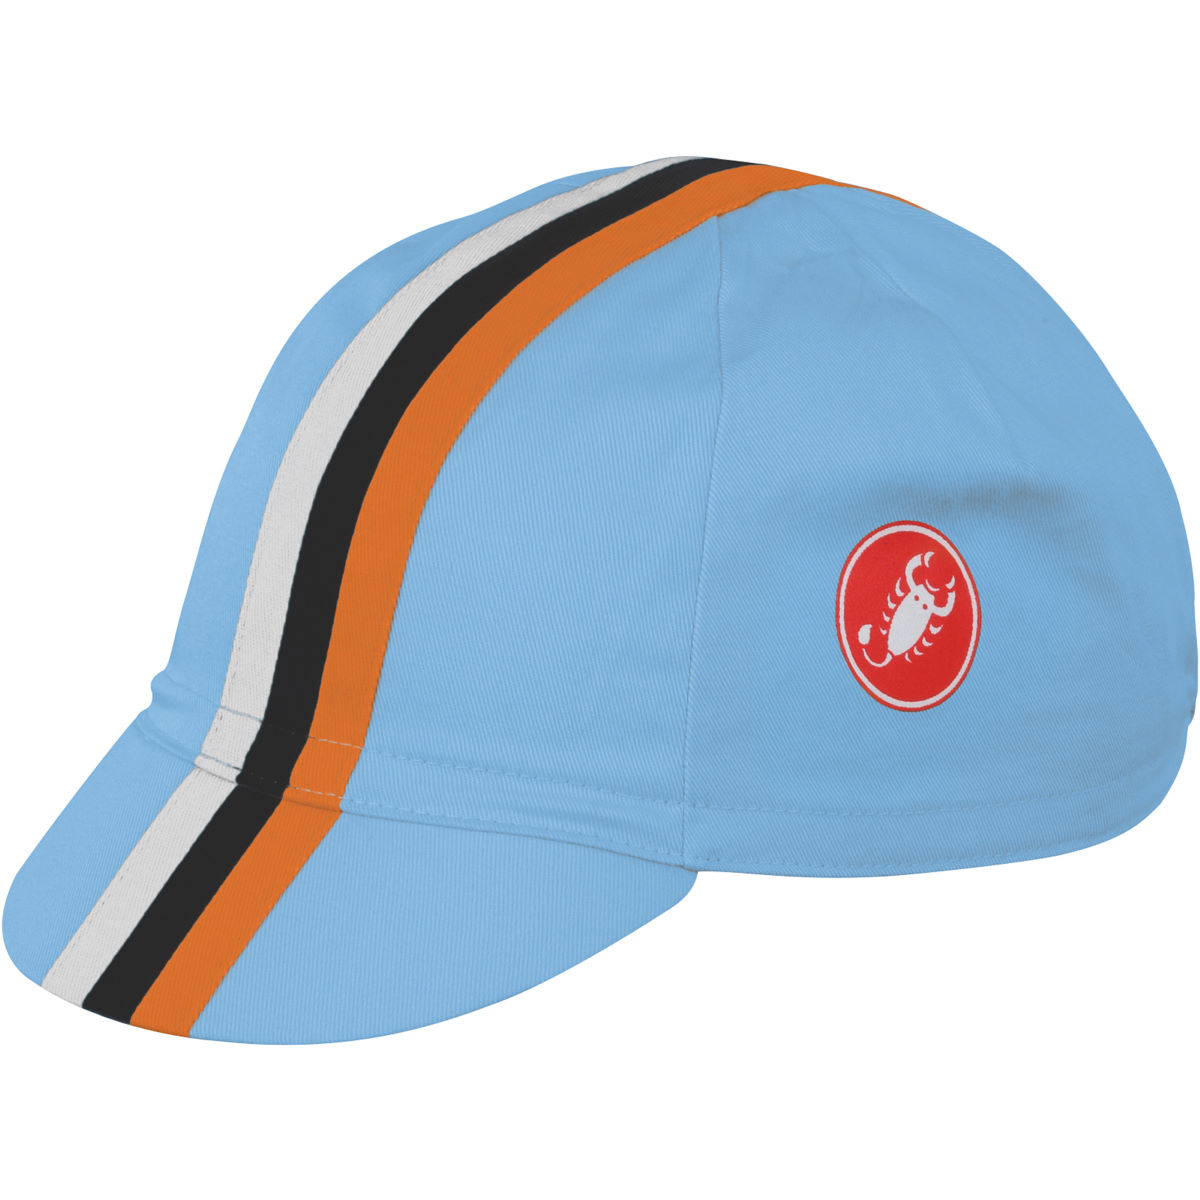 Castelli Retro 2 Cycling Cap